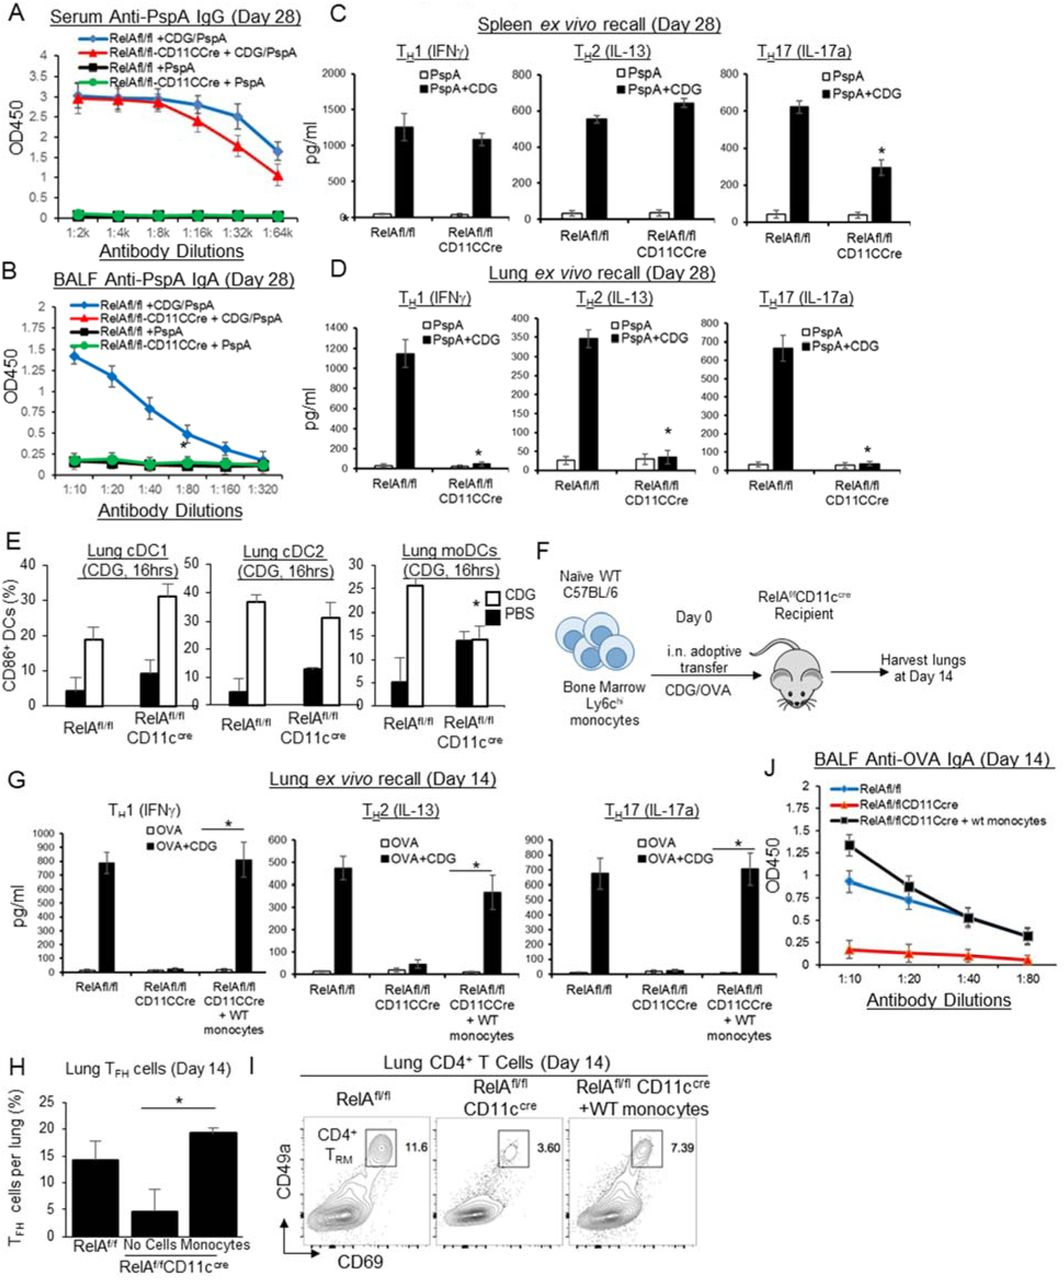 moDCs promote CDG adjuvant-induced lung mucosal IgA and CD4 memory T H responses. A-B . RelA fl/fl and RelA fl/fl CD11c cre mice were immunized ( i.n .) with two doses (14 days apart) of PspA or PspA plus CDG (5μg). Anti-PspA IgG in serum ( A ) and IgA in BALF ( B ) were determined by ELISA 28 days post-immunization. (n=3mice/group) Data are representative of three independent experiments. C-D . Lung cells ( D ) or splenocytes ( C ) from immunized RelA fl/fl and RelA fl/fl CD11c cre mice ( A ) were recalled with 5μg/ml PspA for 4 days in culture. Cytokines were measured in the supernatant by ELISA. E . Frequency of activated (CD86 + ) pulmonary DC subsets in RelA fl/fl and RelA fl/fl CD11c cre mice administered ( i.n .) with PBS or 5µg CDG for 16 hours. (n=3mice/group). Data are representative of two independent experiments. F . Experimental design for adoptive transfer. RelA fl/fl CD11c cre mice (n=3mice/group) were immunized with CDG/OVA. WT bone marrow Ly6C hi monocytes (1.5 million total cells) were transferred ( i.n .) at 30mins, 2hrs and 4hrs post-immunization. Mice were harvested on day 14. G . Lung cells from ( F ) were recalled with 2μg/ml OVA for 4 days in culture. Cytokines were measured in the supernatant by ELISA. Data are representative of three independent experiments. H . Frequency of lung T FH from ( F ). Data are representative of three independent experiments. I . CD4 + CD69 + CD49a + T RM were determine by flow cytometry from ( F ). Data are representative of three independent experiments. J . BALF anti-OVA IgA on day 14 from ( F ) were determined by ELISA. Data are representative of three independent experiments. Graphs represent the mean with error bars indication S.E.M. P values determined by one-way ANOVA Tukey's multiple comparison test ( C, D, H ) or unpaired student t -test ( E, G ). * P